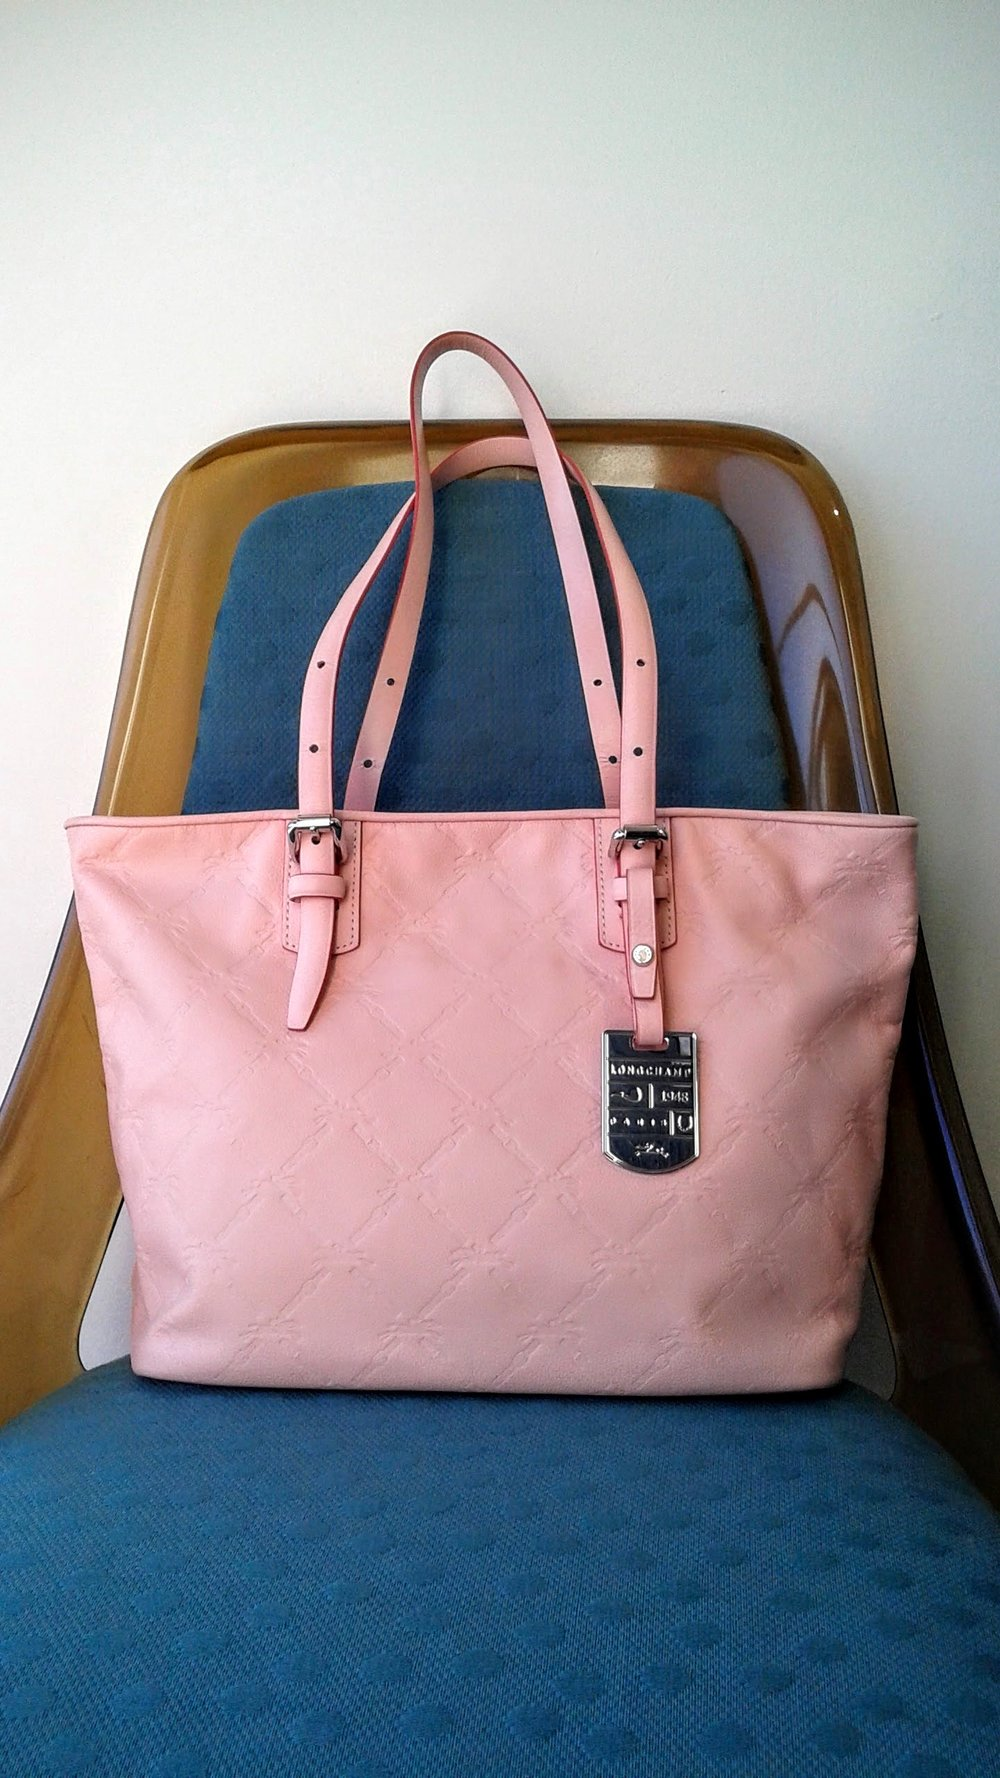 Longchamps purse; $175